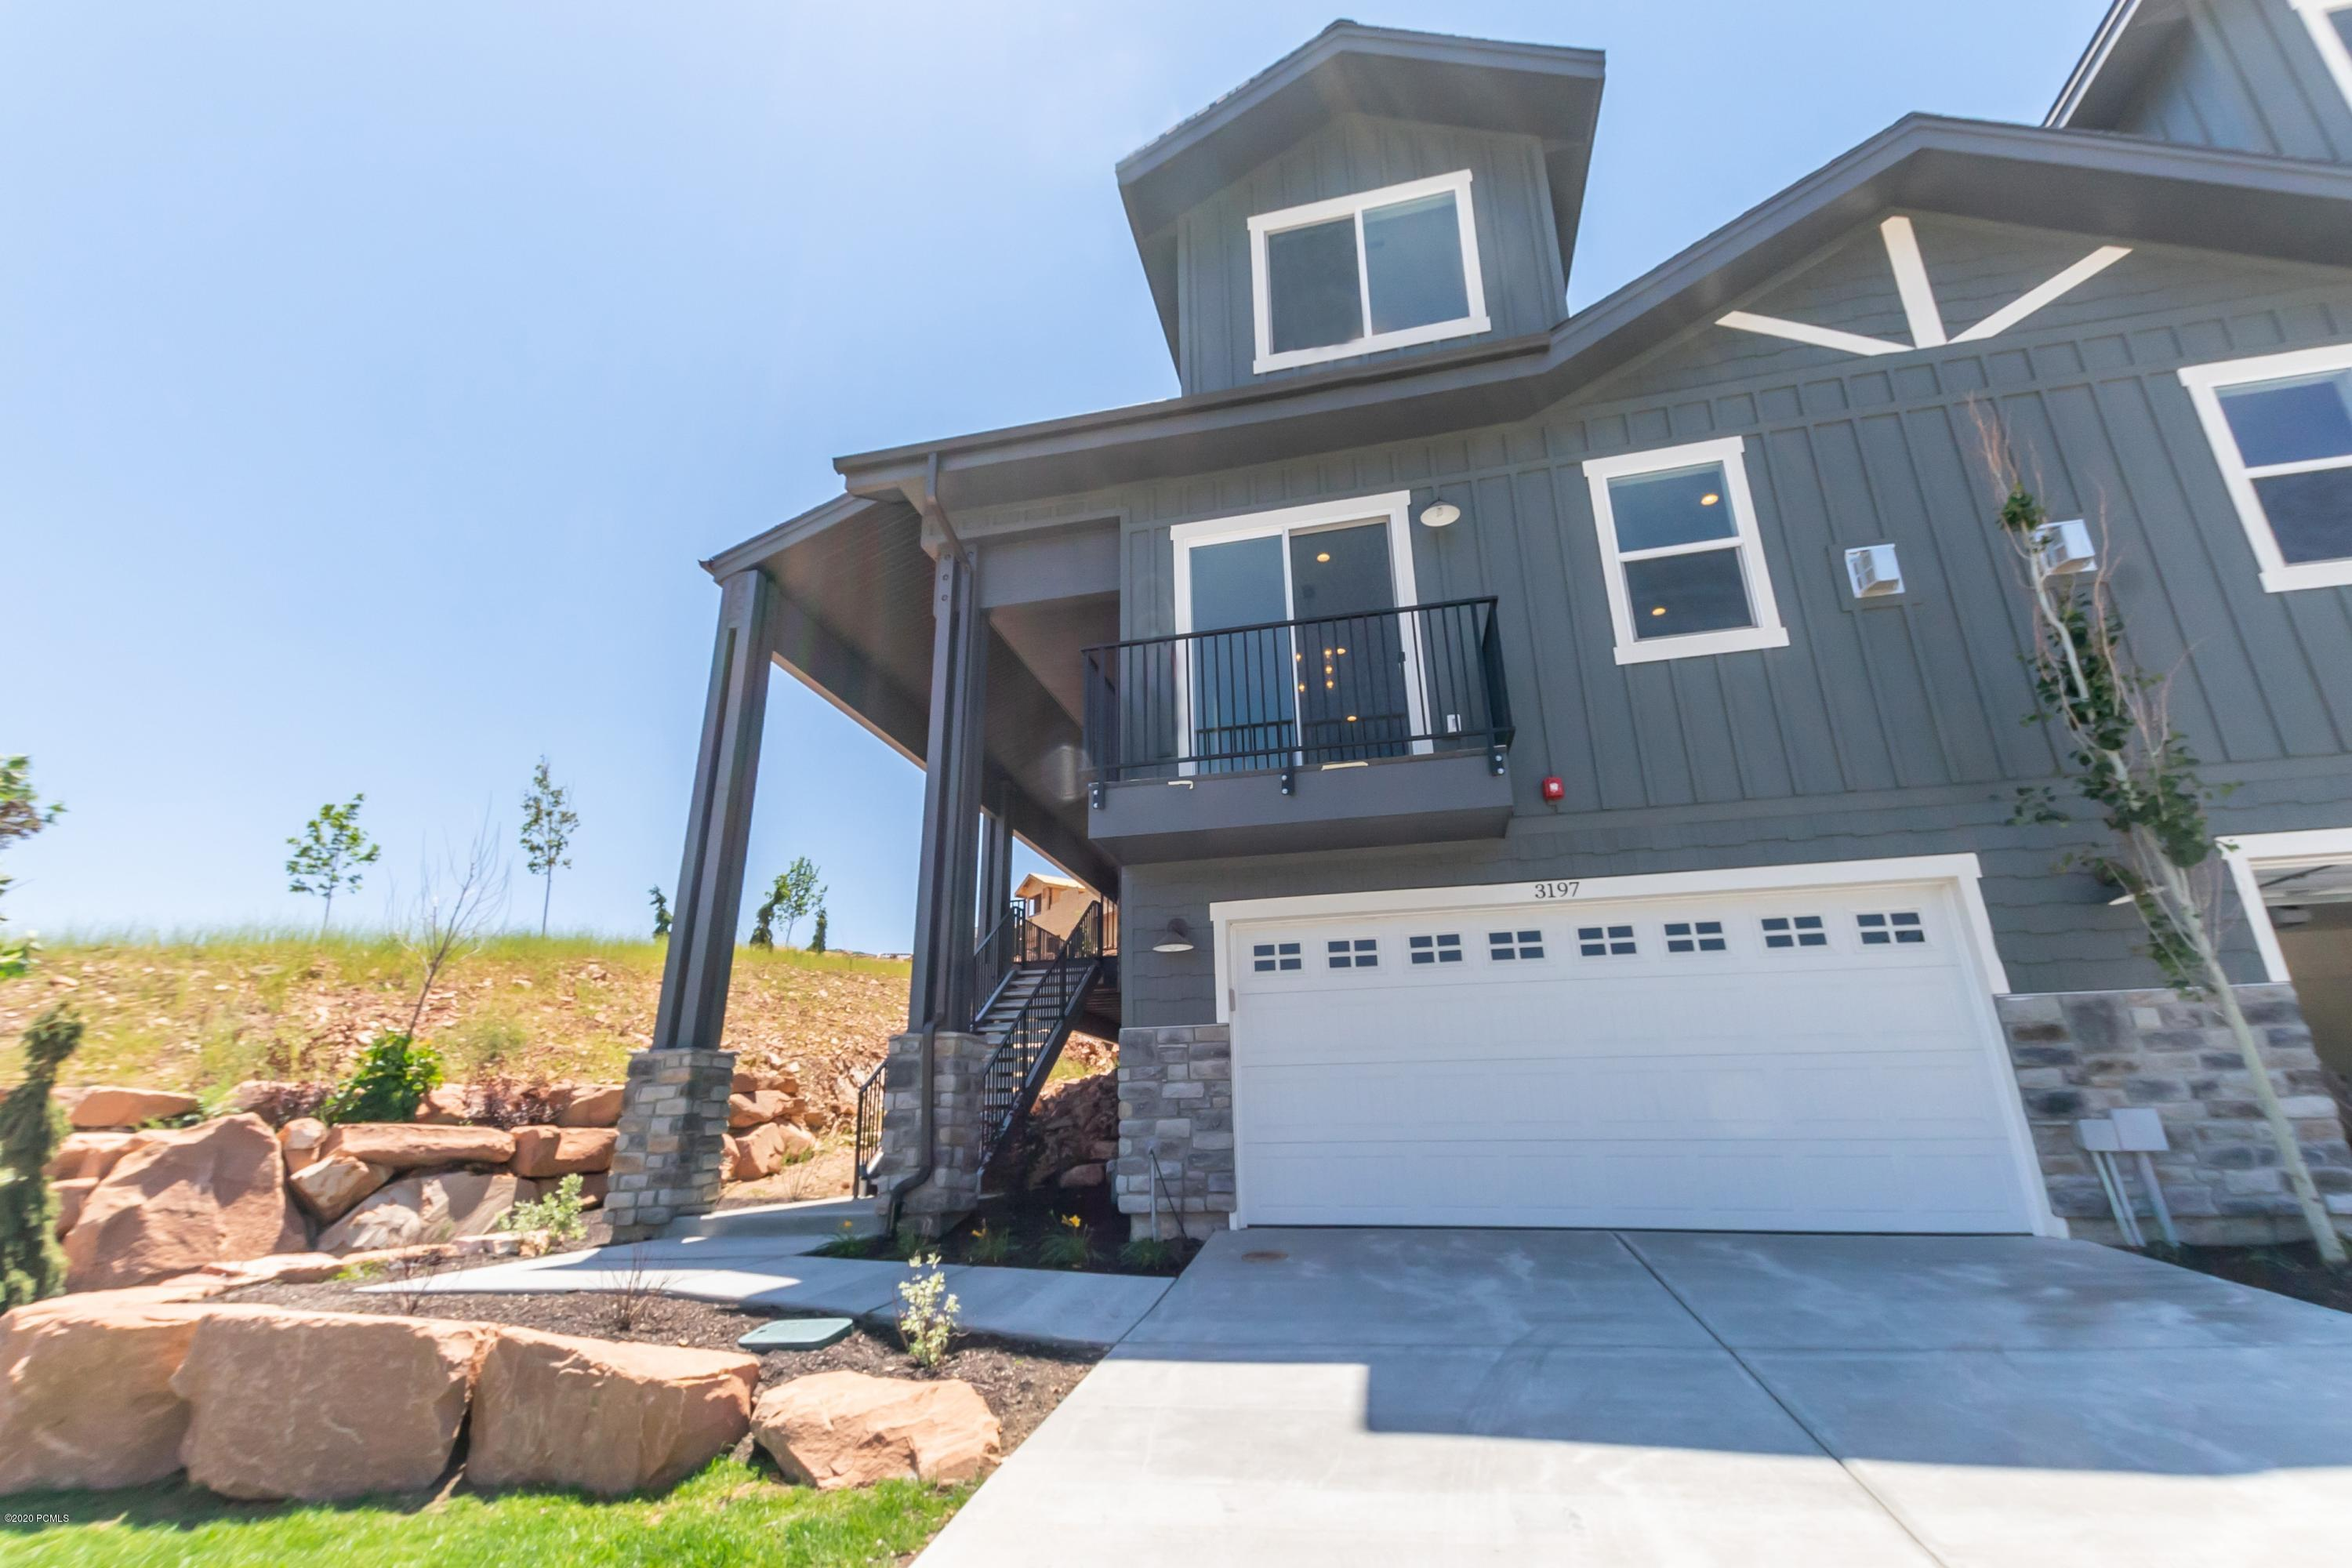 3321 Santa Fe Road, Park City, Utah 84098, 3 Bedrooms Bedrooms, ,3 BathroomsBathrooms,Condominium,For Sale,Santa Fe,12003559